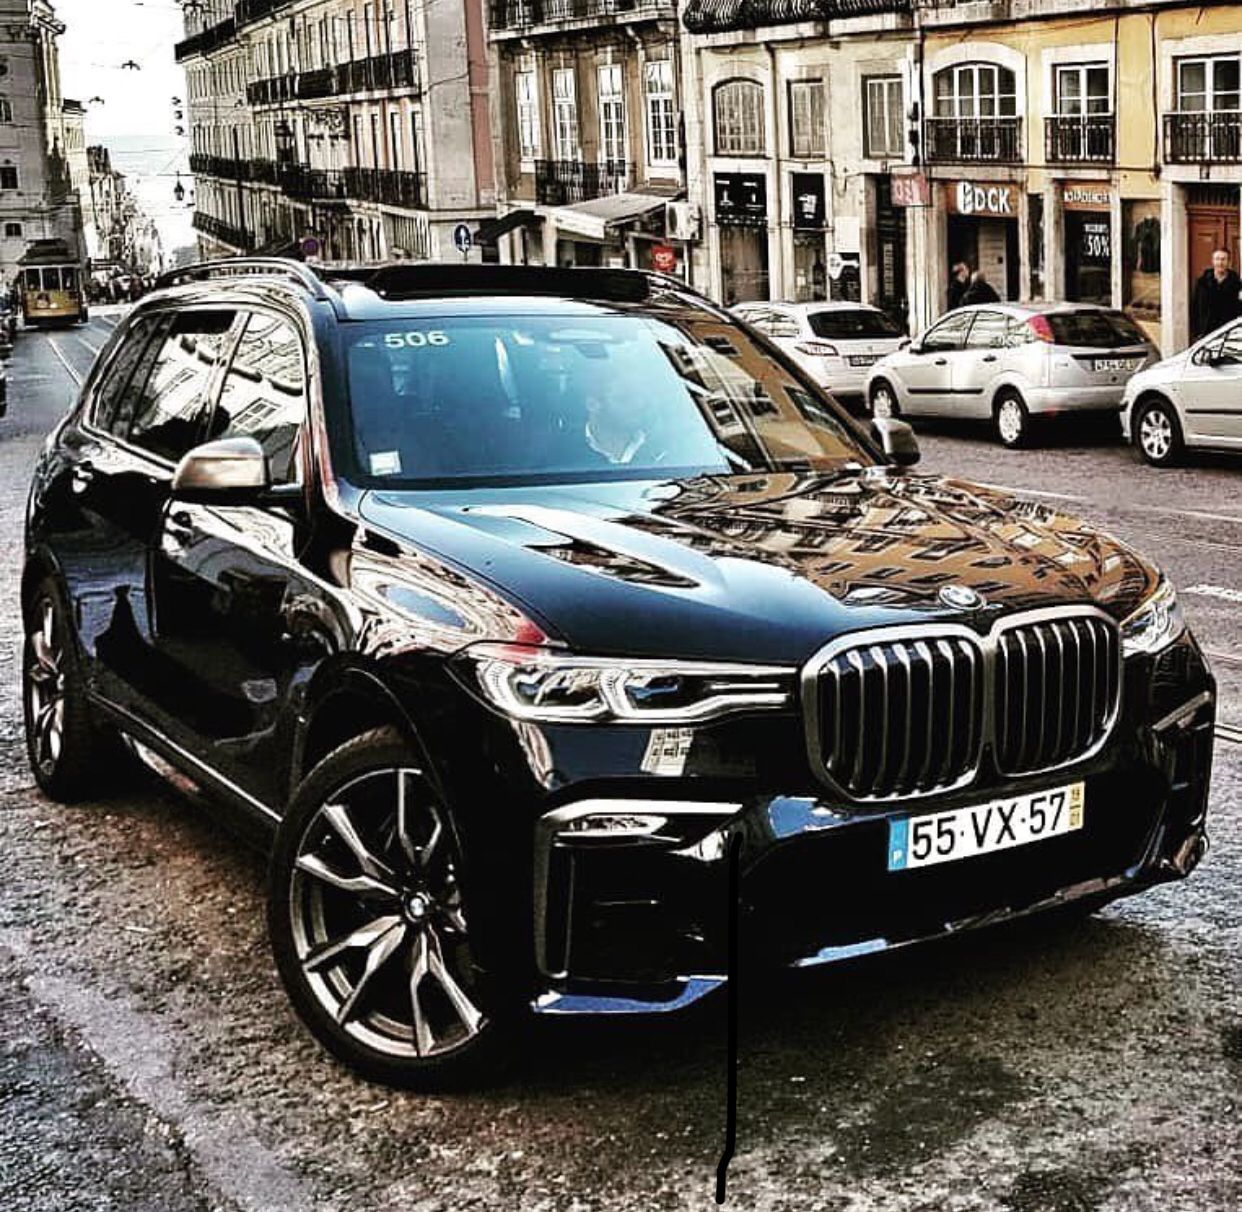 Bmw X7 Bmwx7 Cars Black Auto Bmw X7 Bmw Cars Bmw